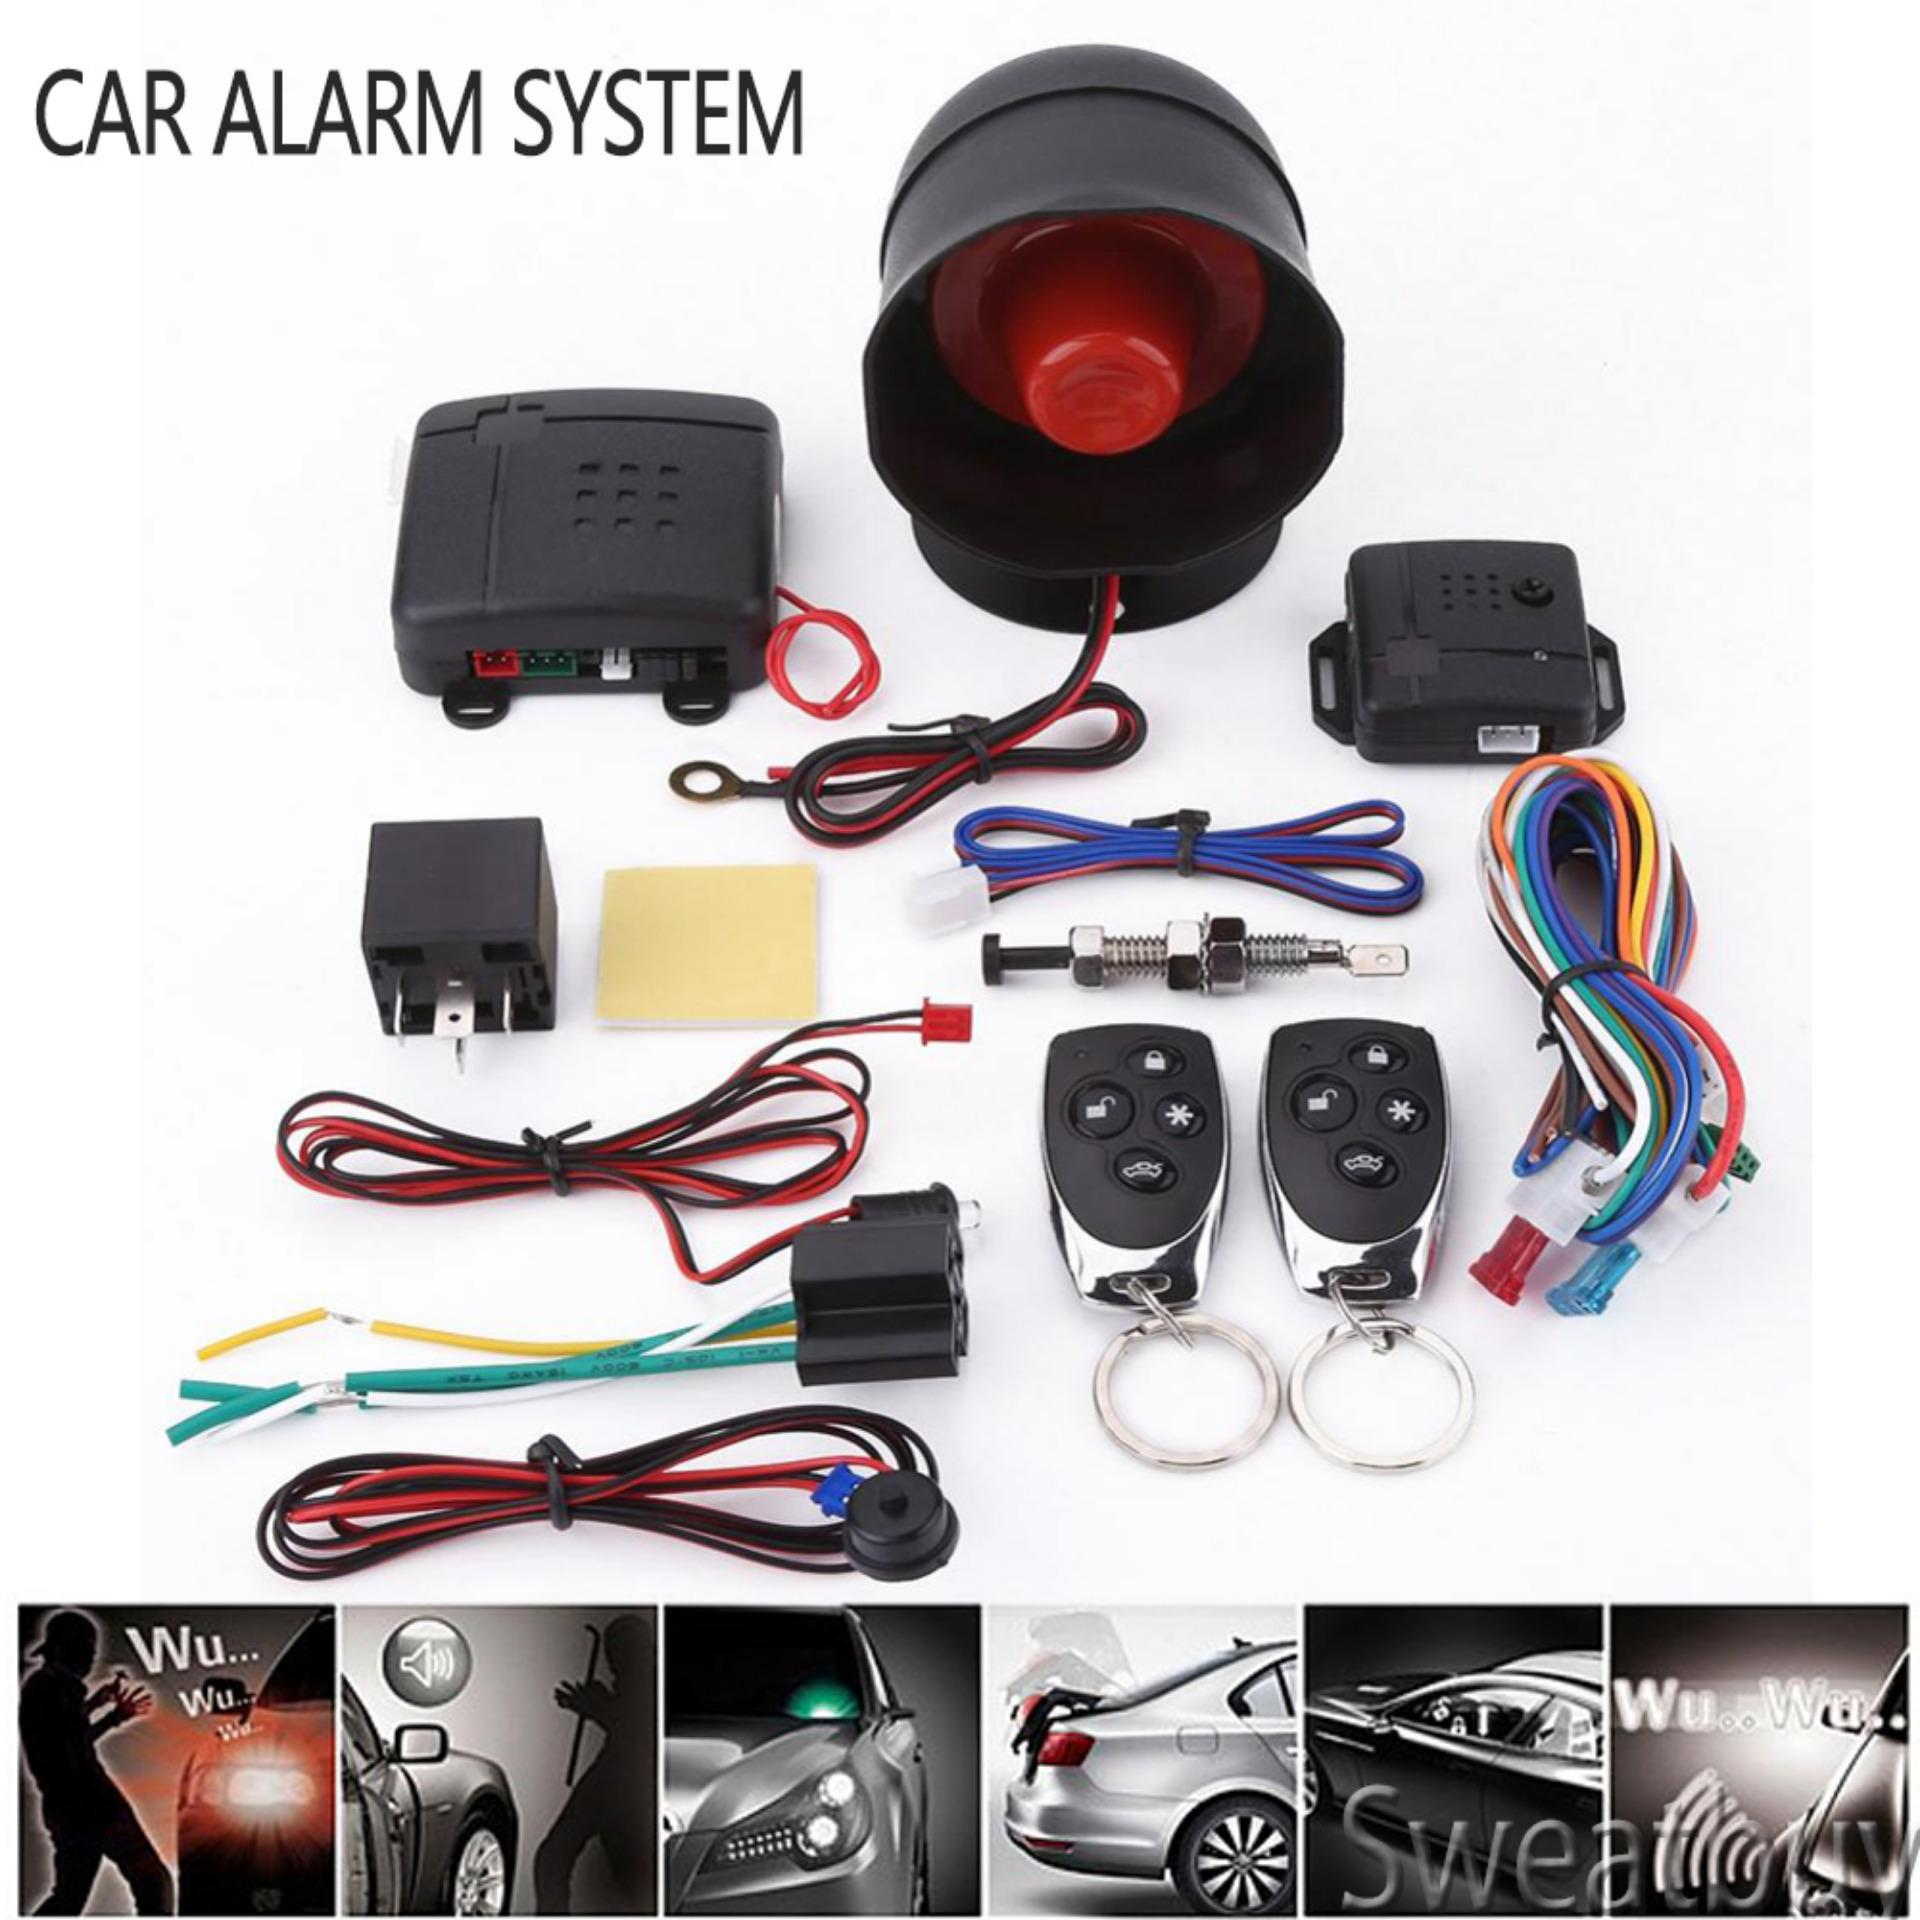 Alarm System For Sale Car Accessories Online Brands Reverse Parking Sensor Circuit Security Promotionsuniversal Protection Keyless Entry With 2 Remote Controls Siren